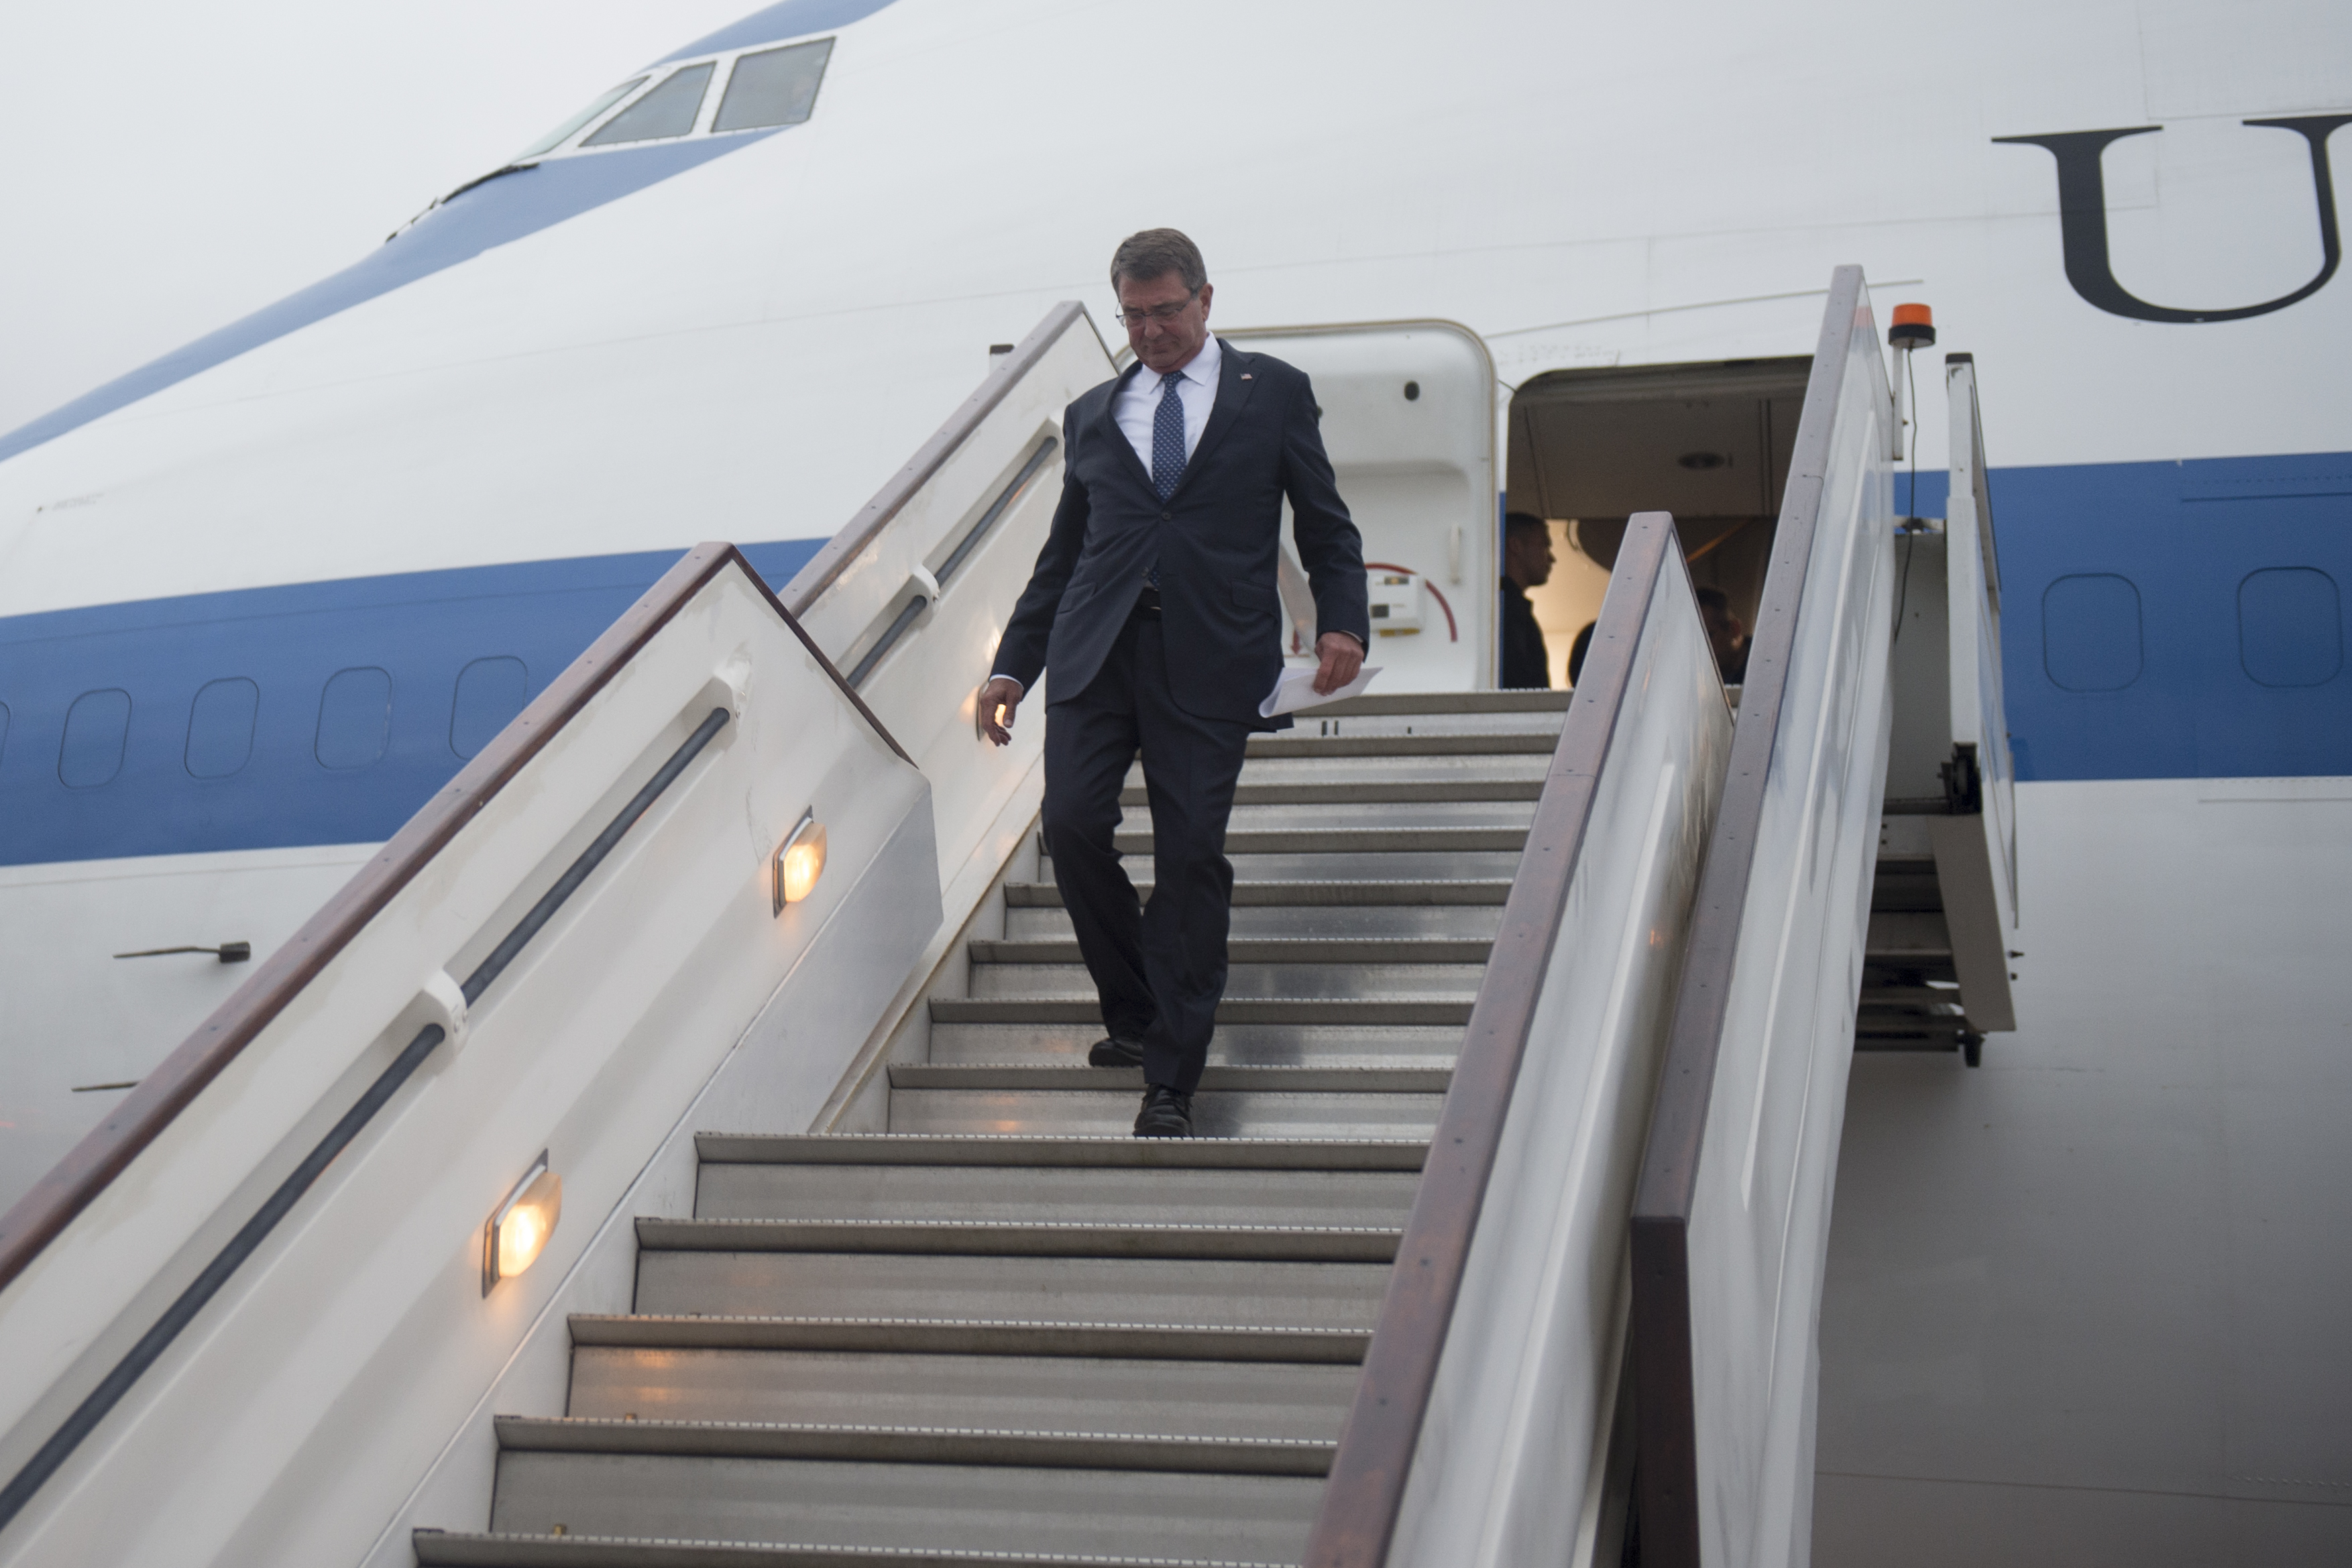 Secretary of Defense Ash Carter arrives in London, England, Sept. 6, 2016. (DoD photo by U.S. Air Force Tech. Sgt. Brigitte N. Brantley)